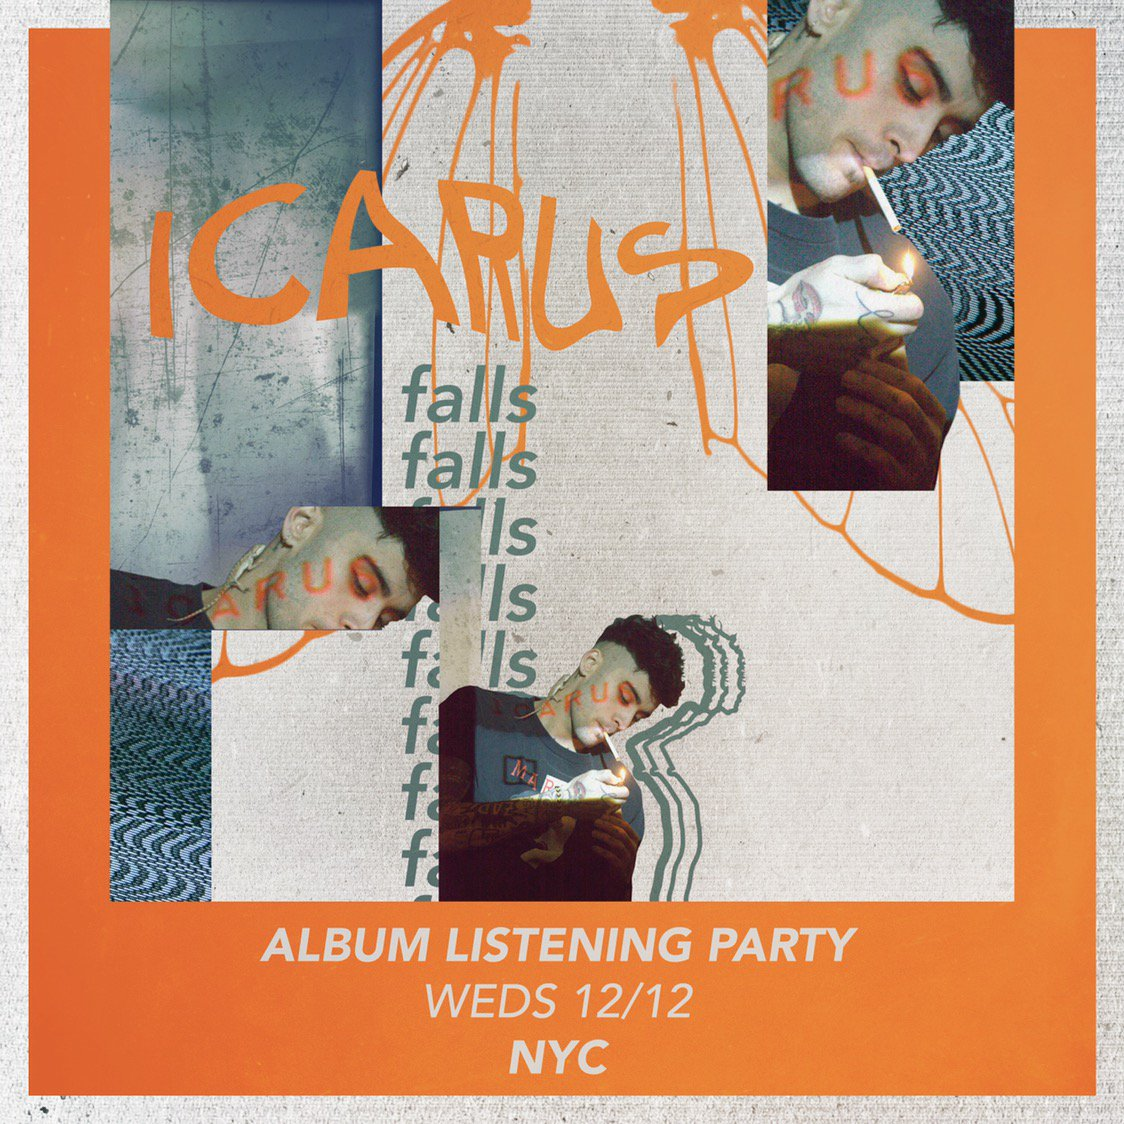 NYC album listening party this Wednesday: https://t.co/KLSimACMNM  Limited tickets available #ICARUSFALLS �� �� https://t.co/IaQTwSOSr2